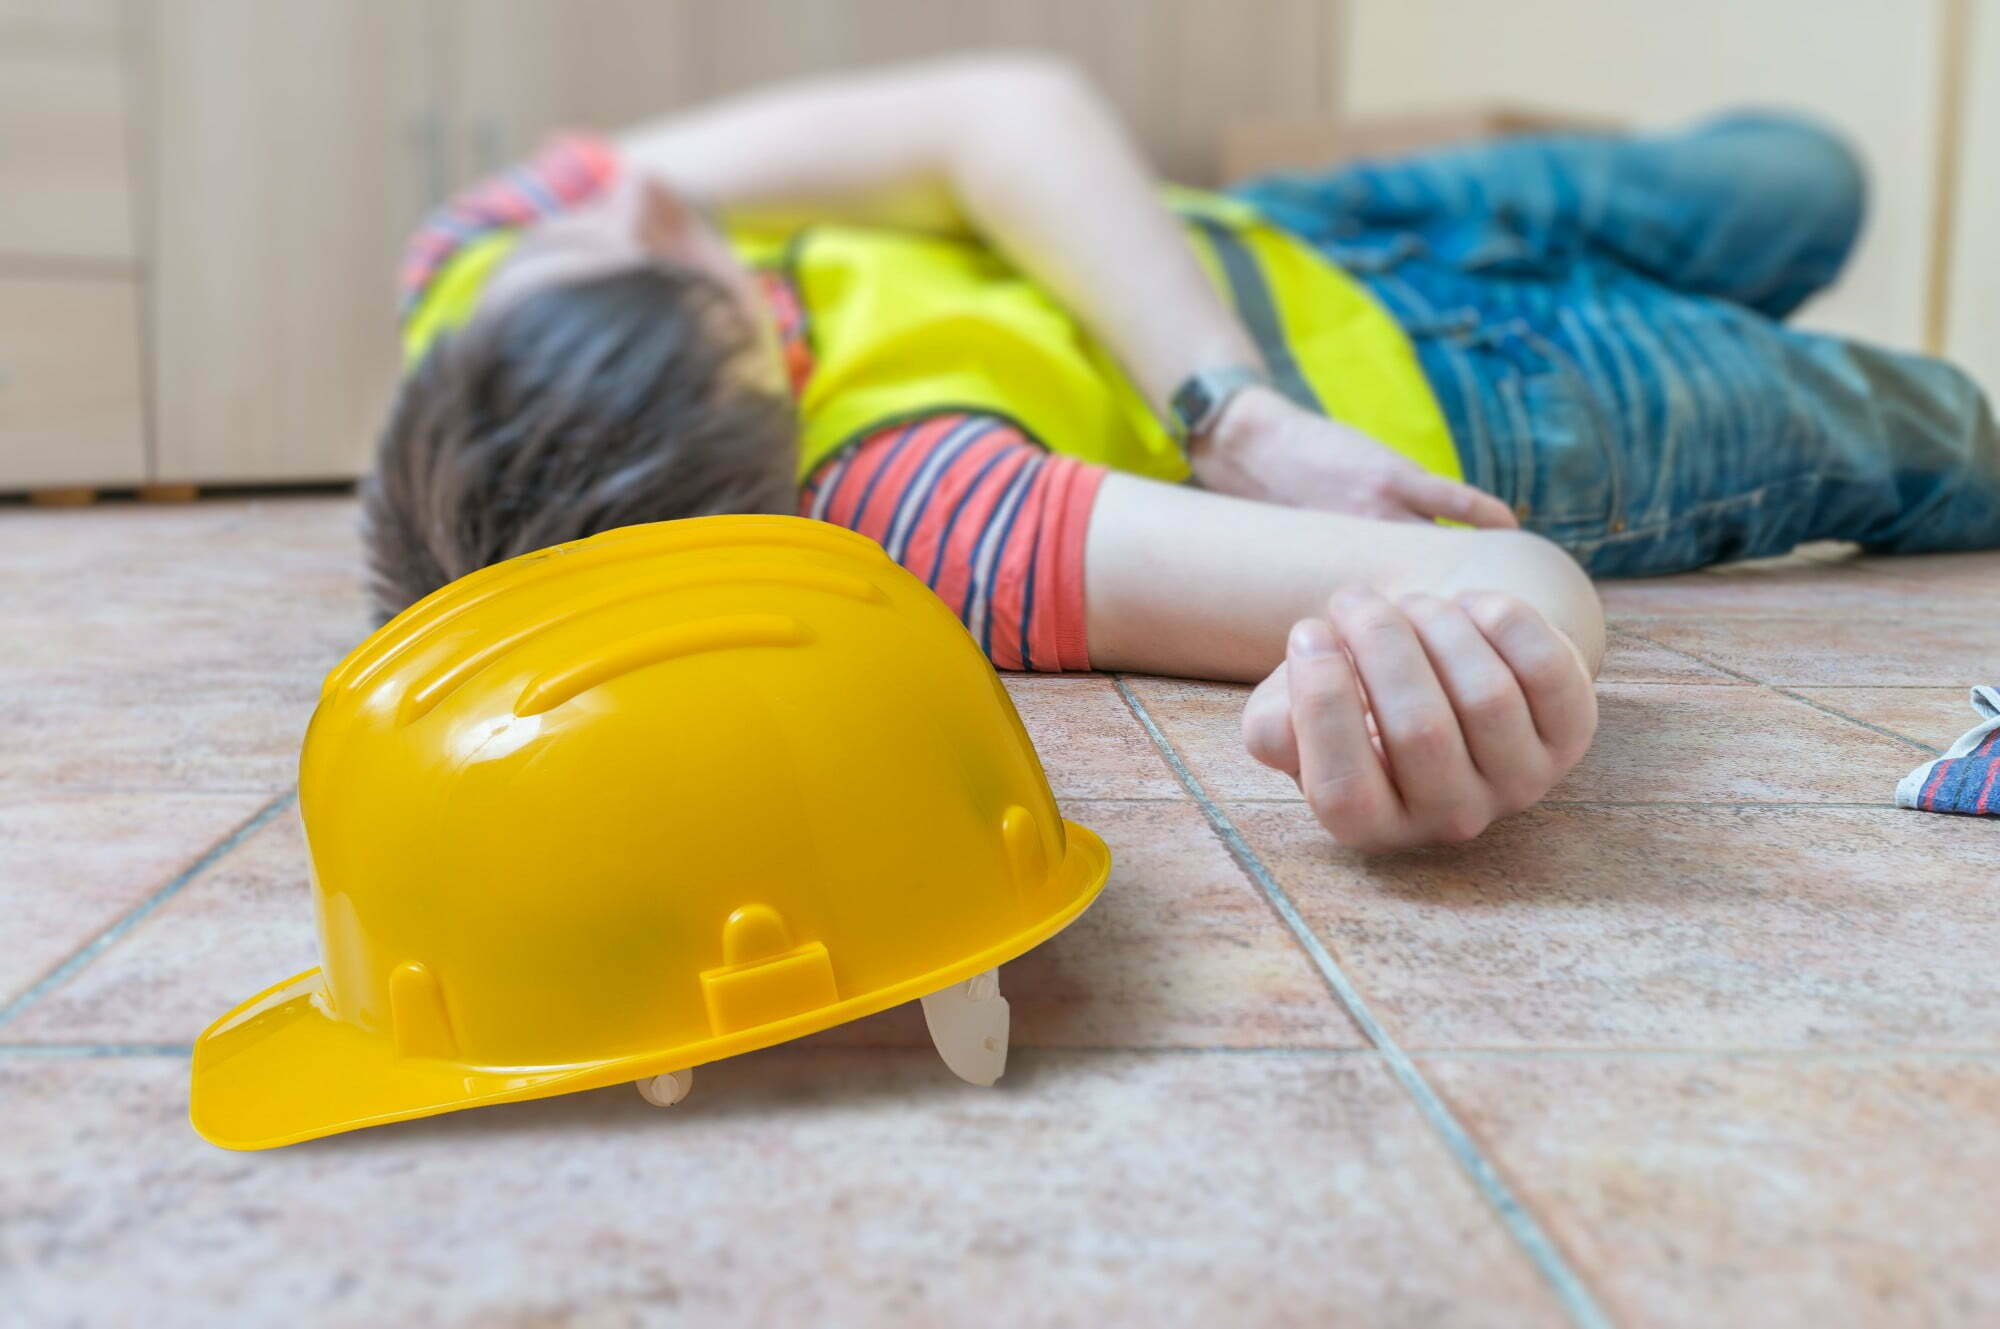 Injured on construction site